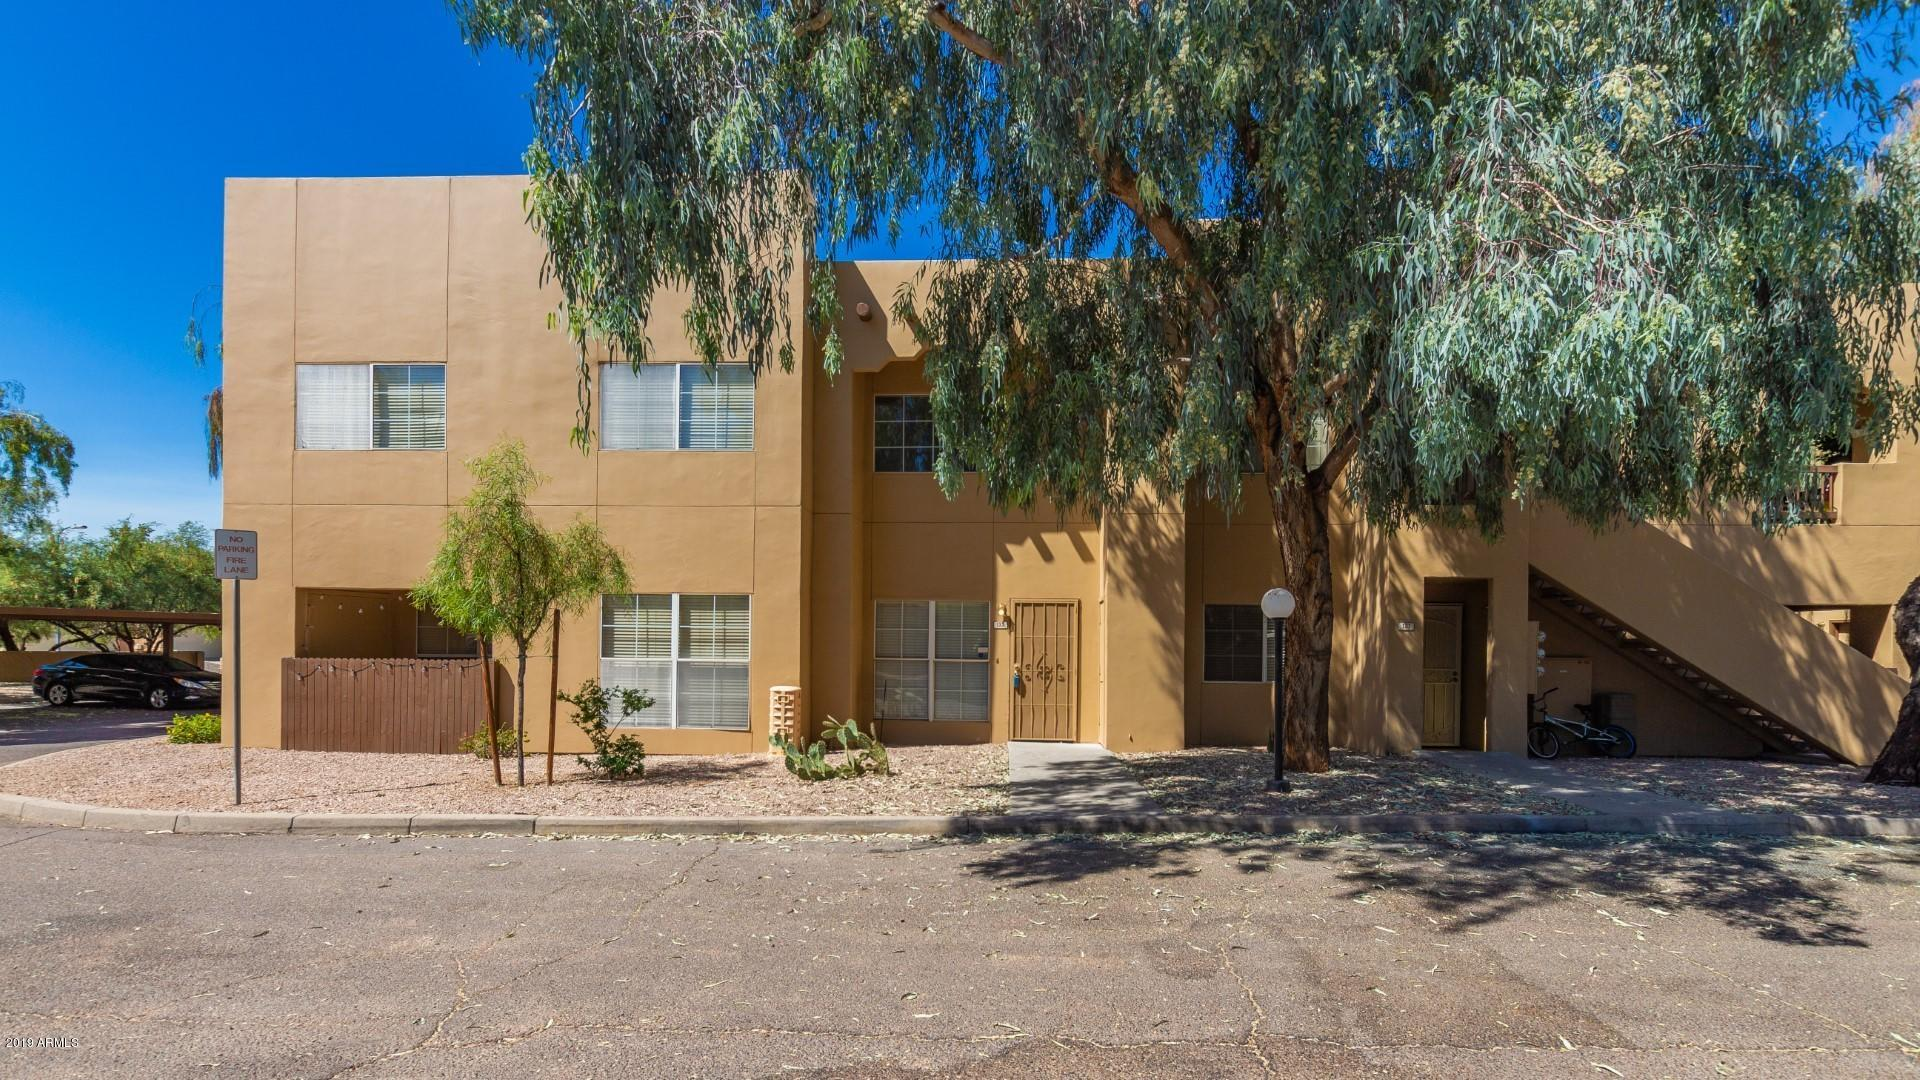 Photo of 500 N GILA SPRINGS Boulevard #133, Chandler, AZ 85226